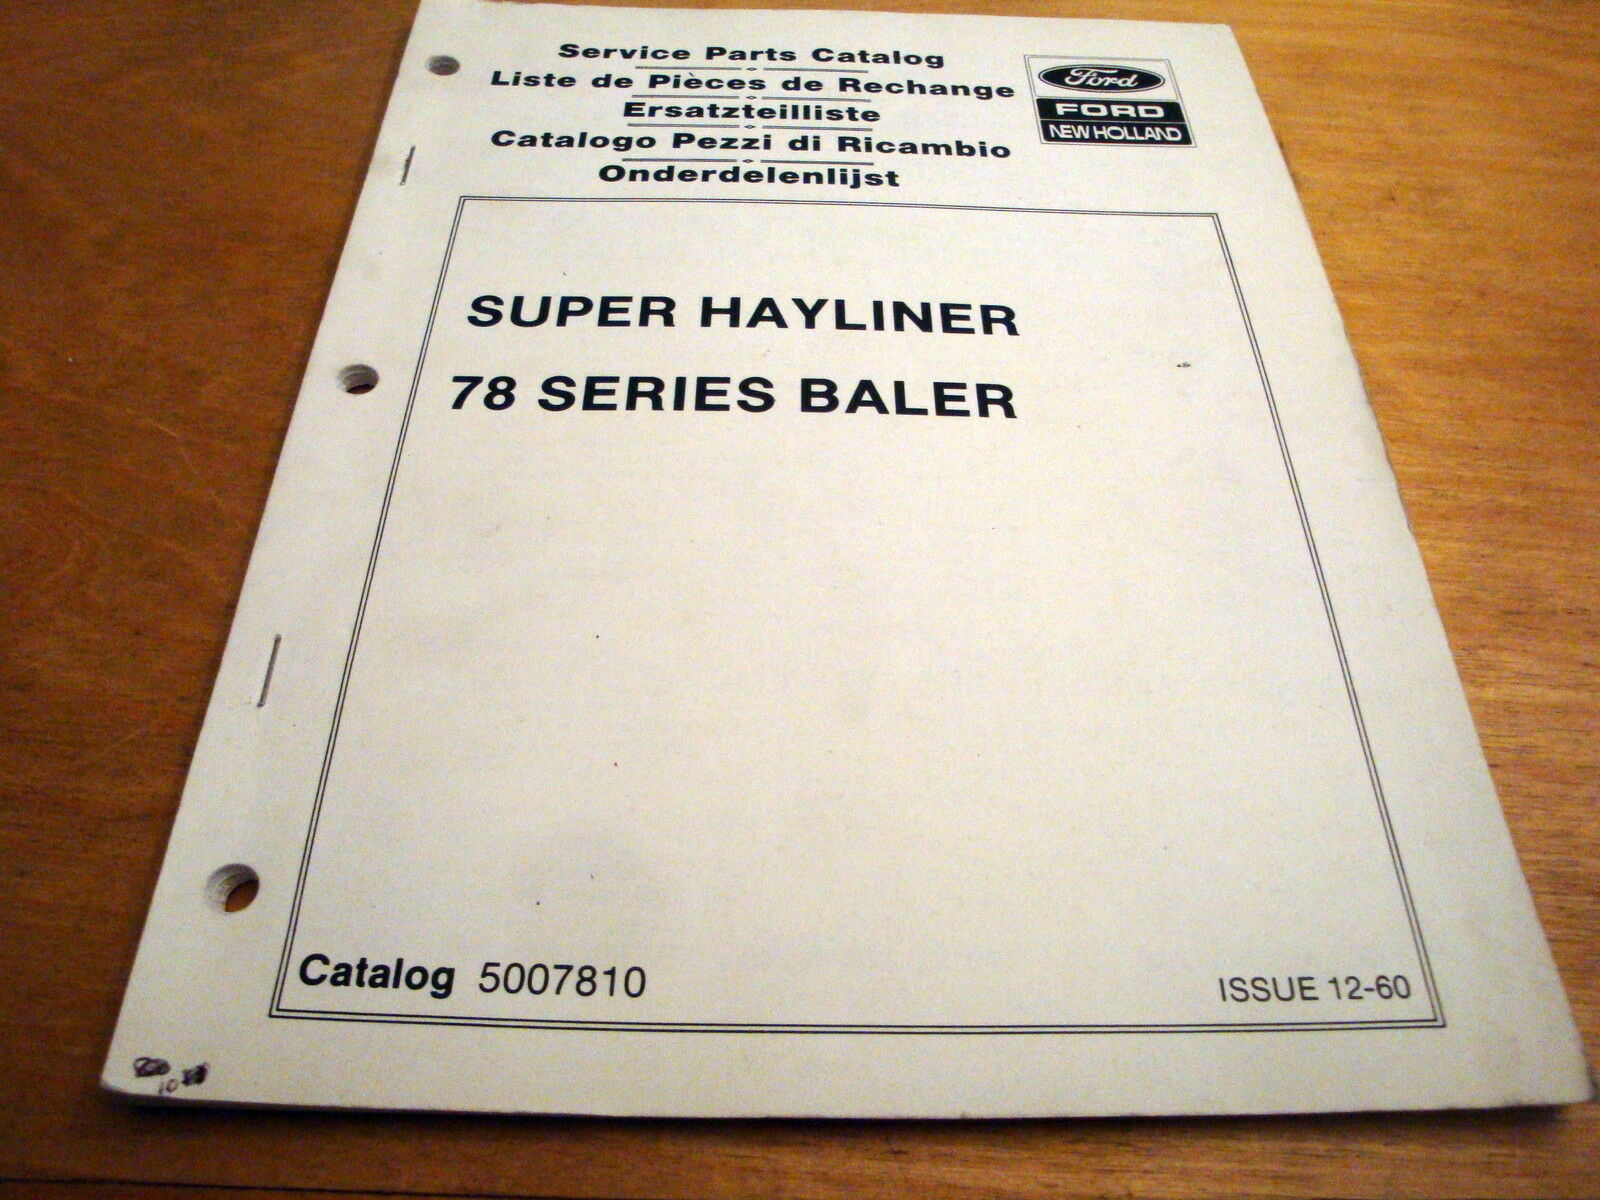 New Holland Super 78 S78 Hayliner Baler Parts Catalog List Book Manual NH  OEM 1 of 1Only 1 available See More